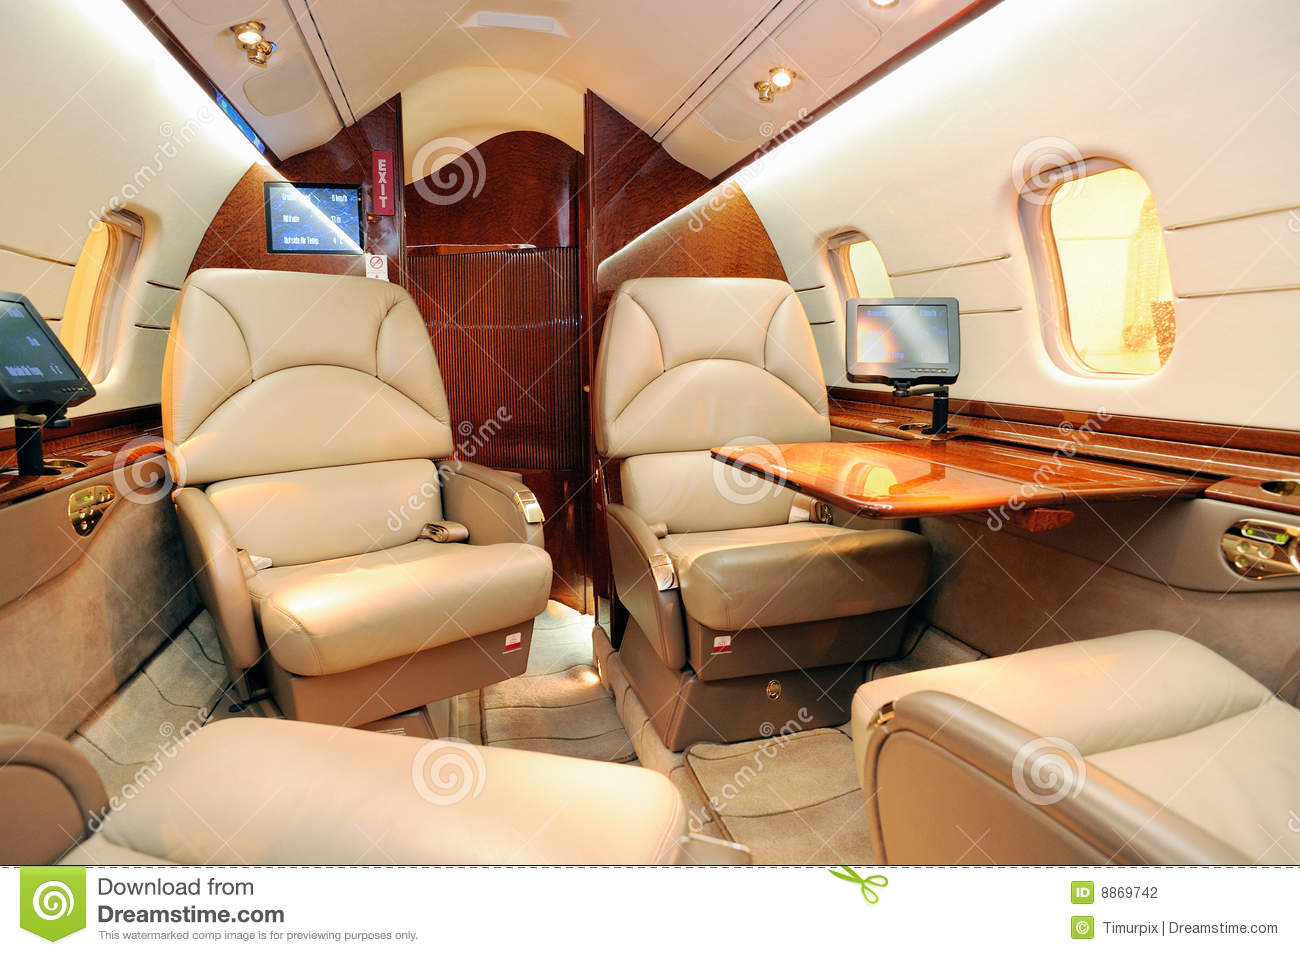 Interior of jet plane stock photography image 8869742 for Avion jetairfly interieur